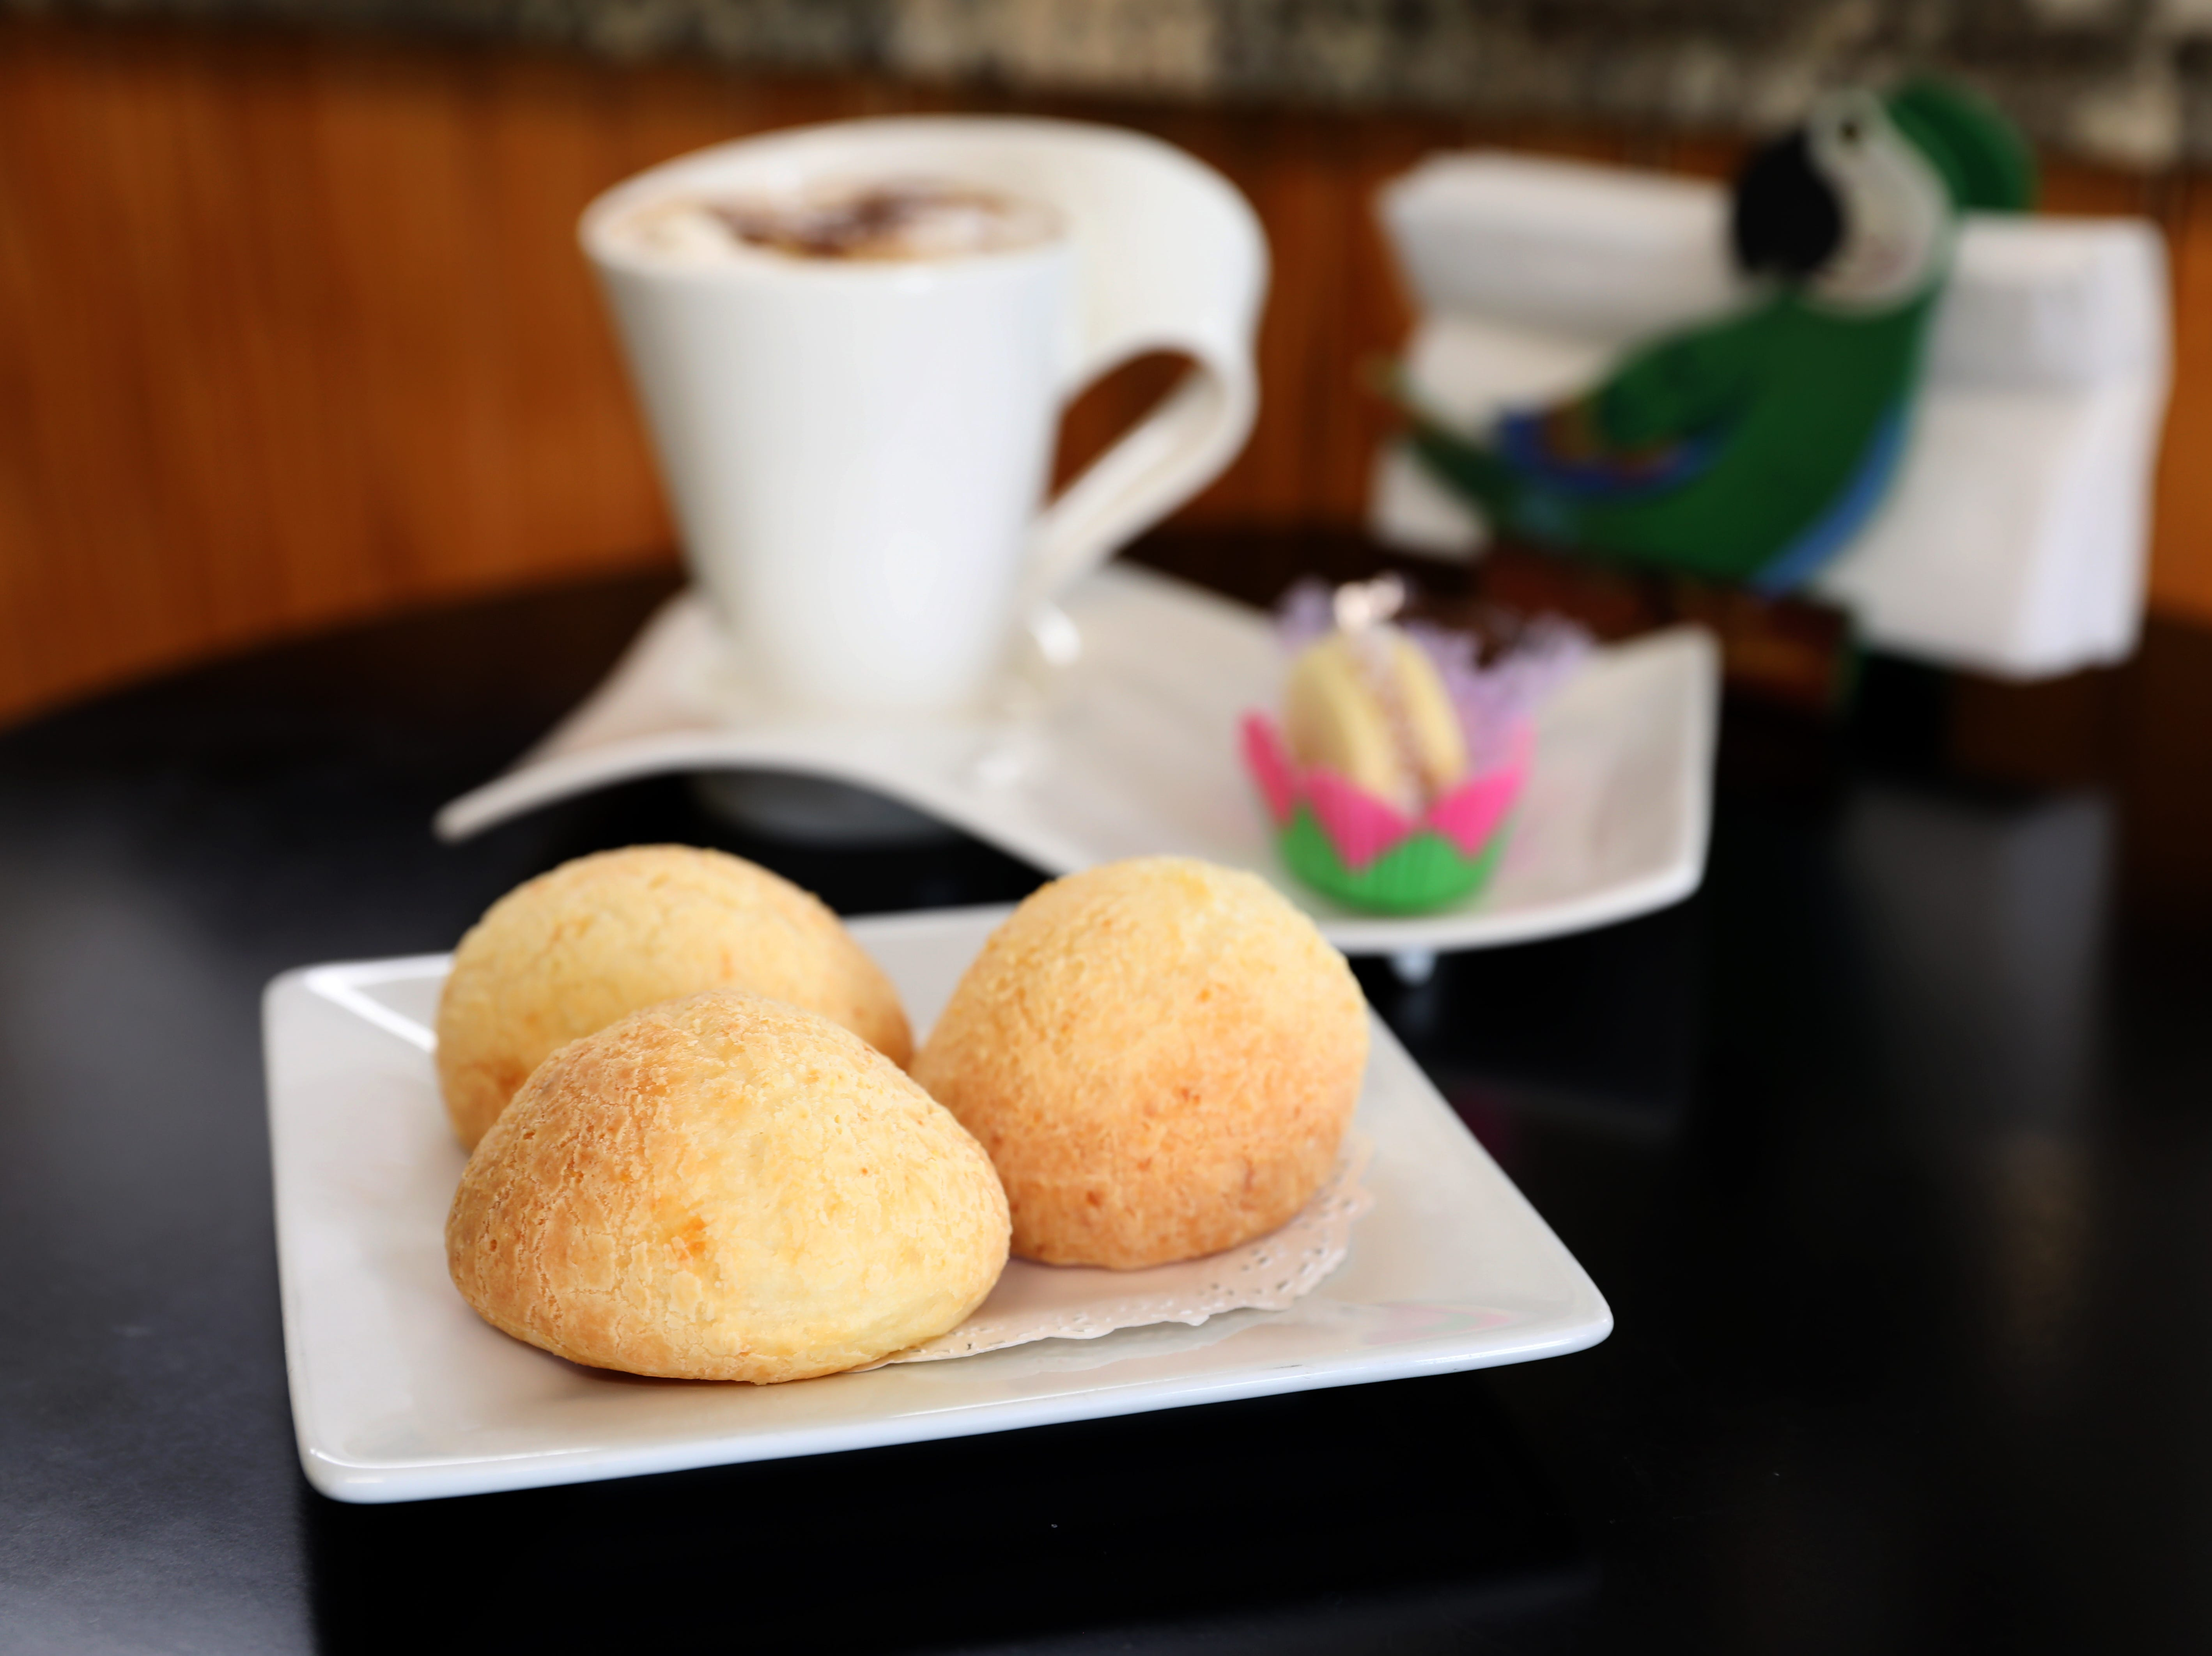 Pao de queijo, a Brazilian cheese bread, at Araras Coffee & More, where they sell Brazilian coffee and treats in White Plains, on Mamaroneck Ave.